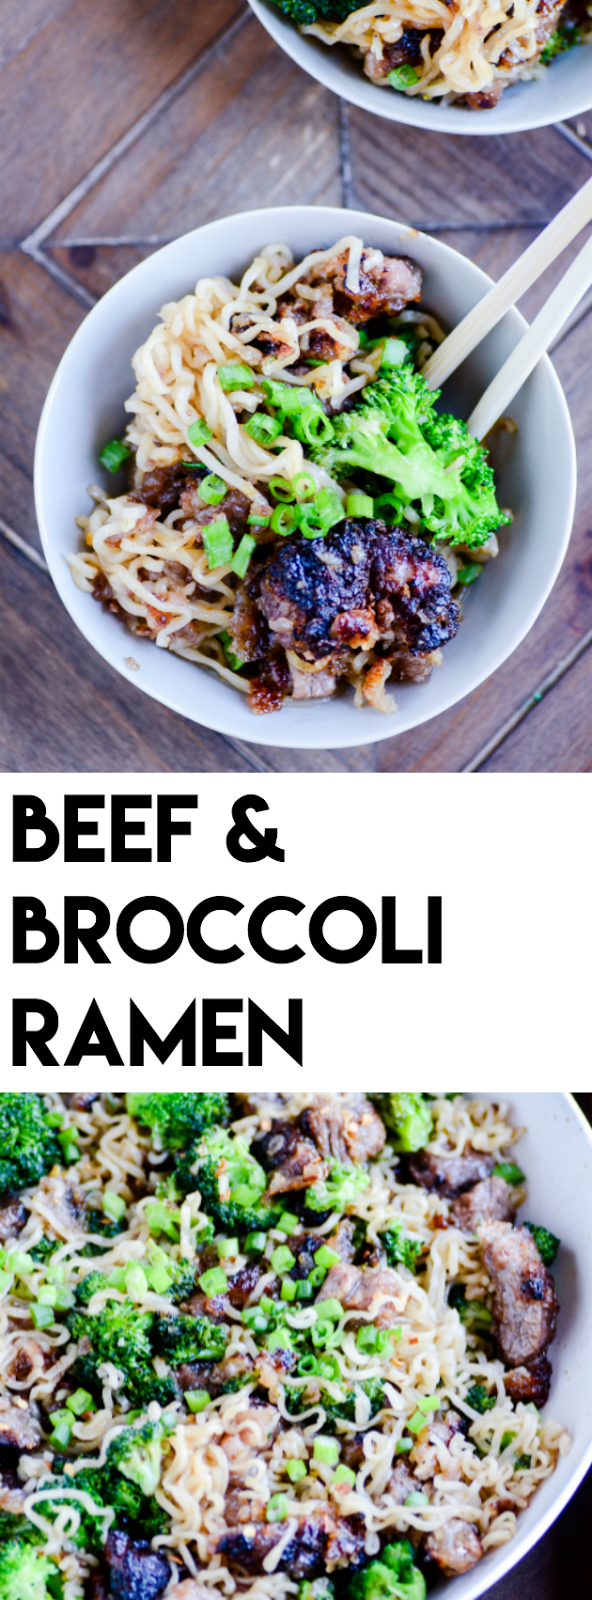 My family is obsessed with this homemade beef & broccoli recipe. Better than takeout for sure!